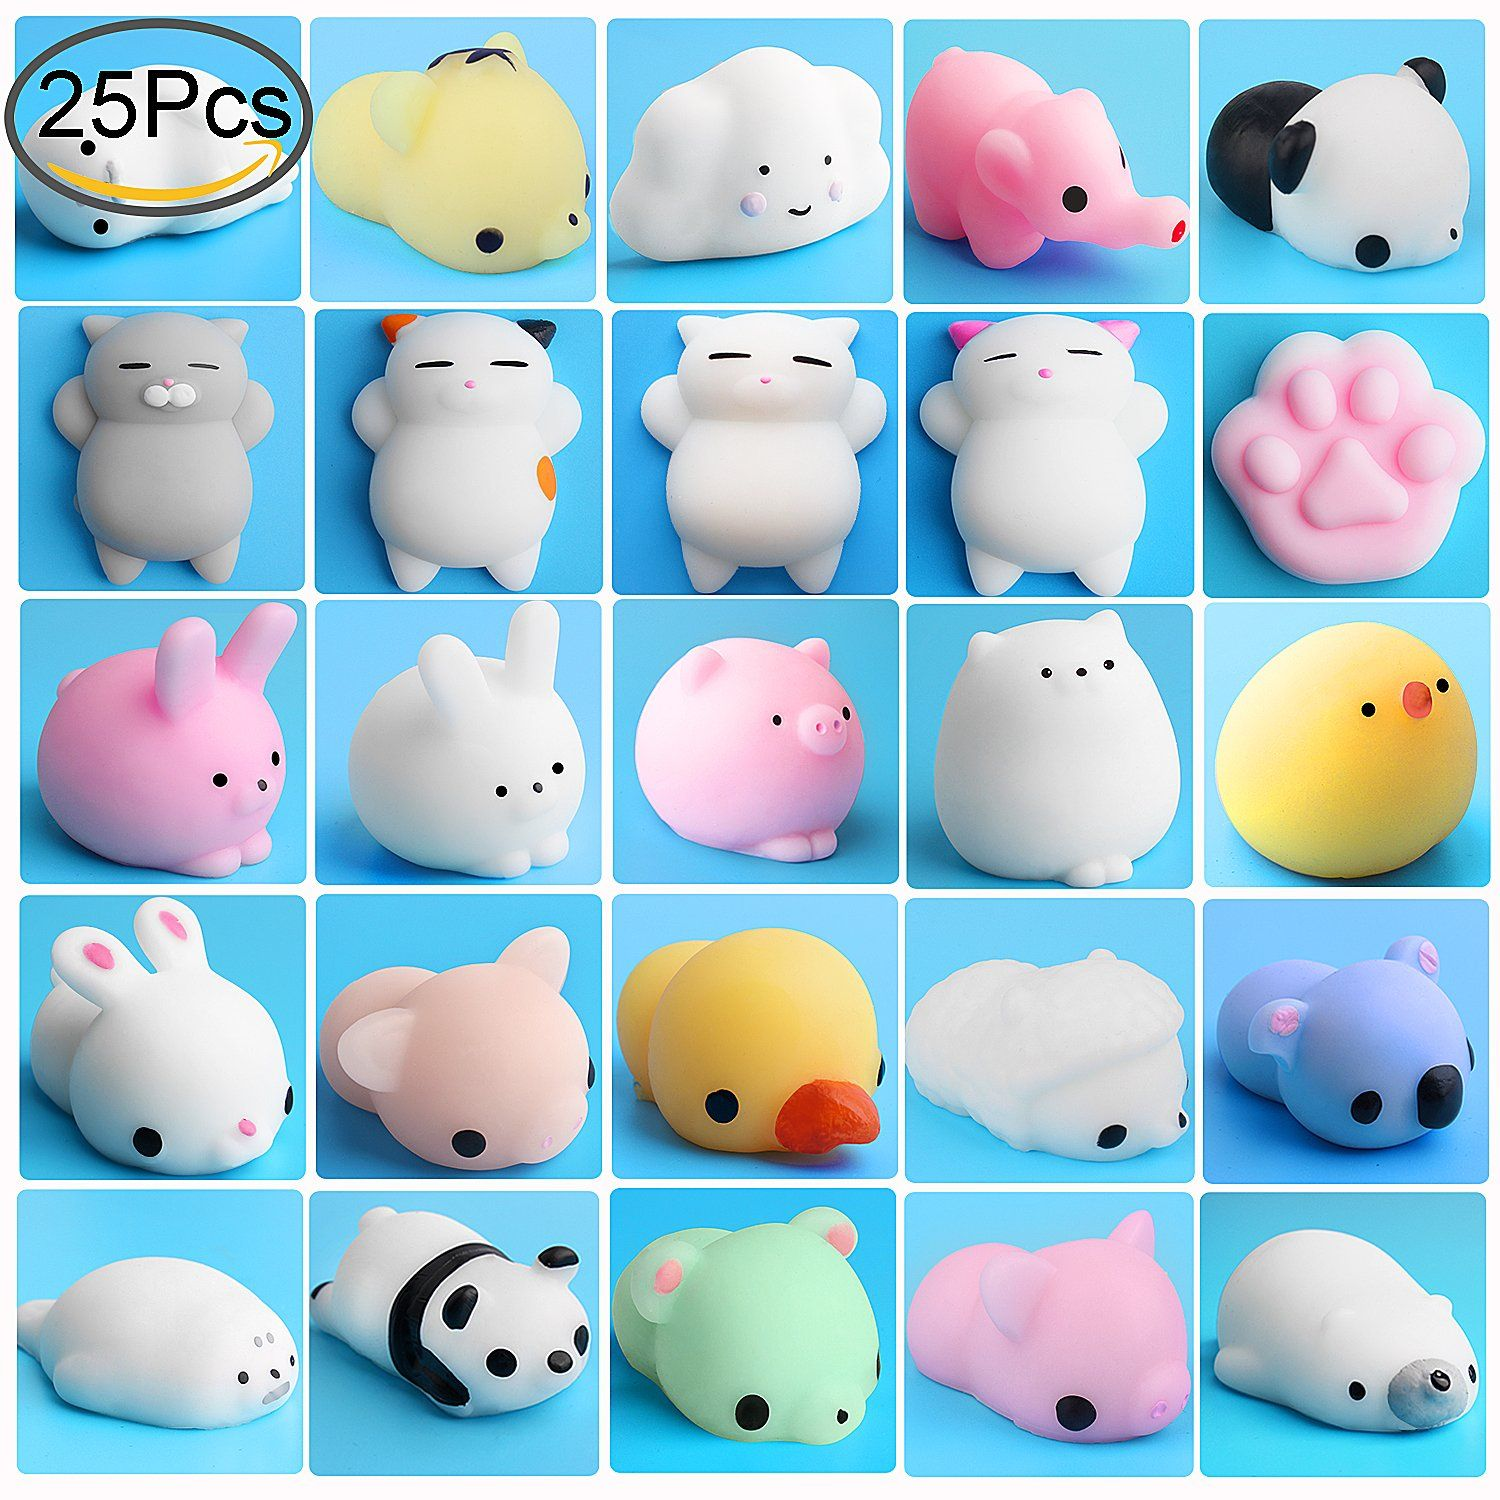 Mobile Phone Accessories Random Mini Mochi For Squishy Slow Rising Cat Kitten Seal Squeeze Cute Healing Toy Kawaii Squishies Collection Stress Reliever